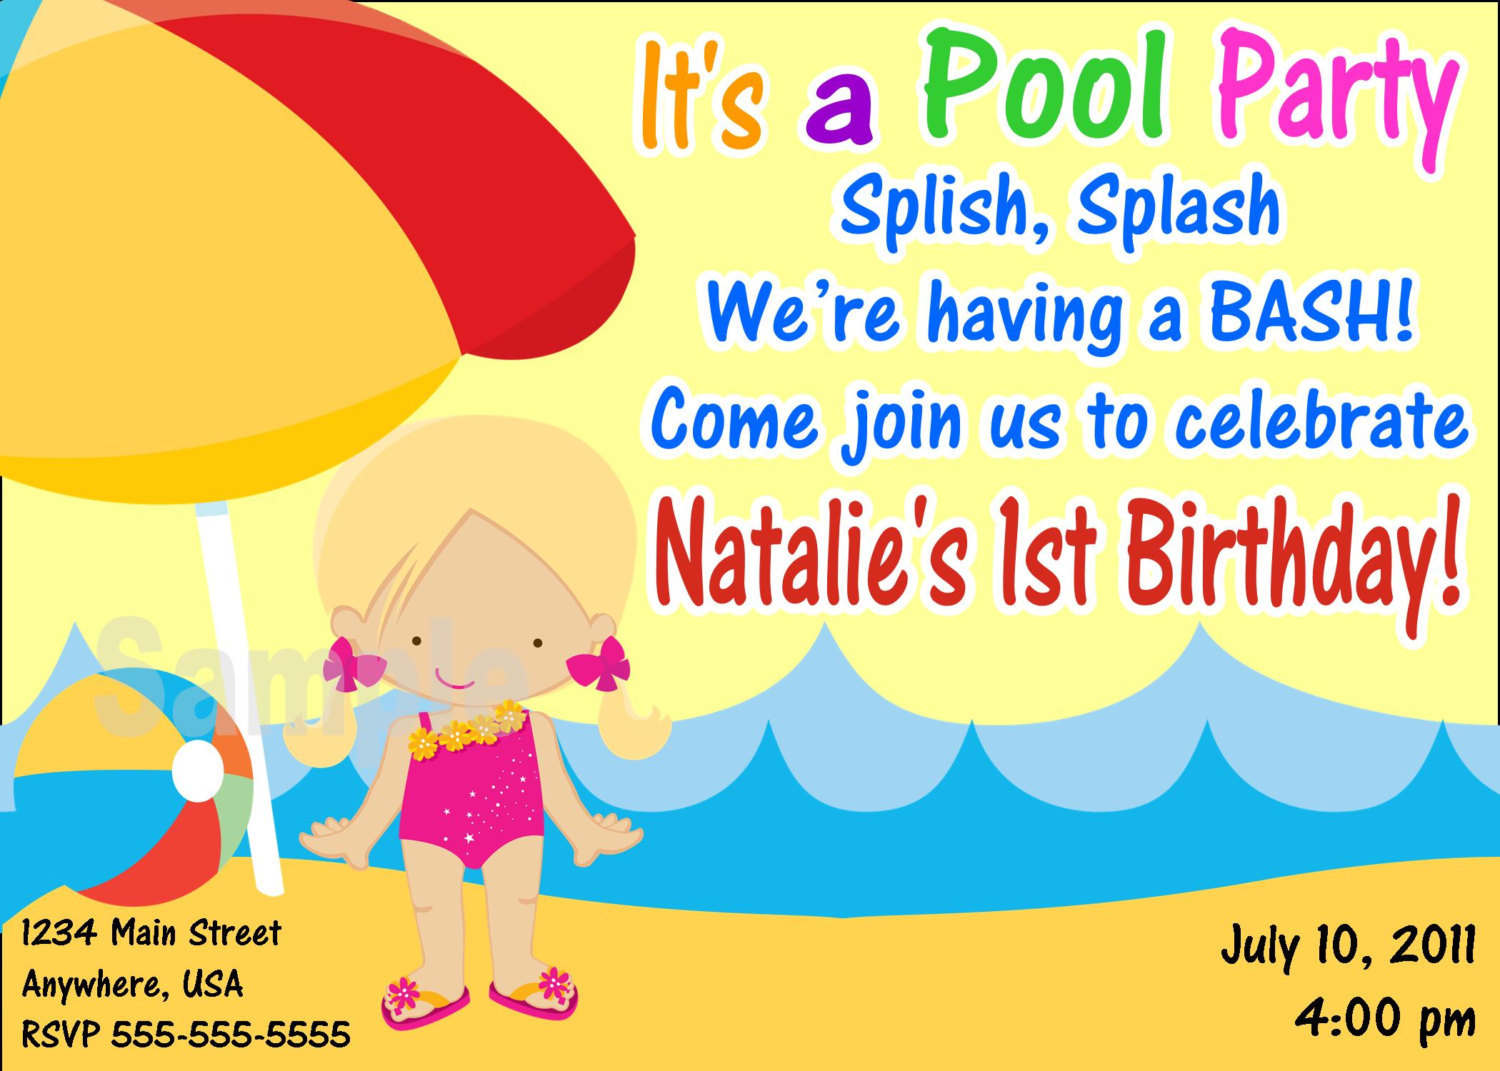 Printable Pool Party Invitations gangcraftnet – Pool Party Invitation Templates Free Printable